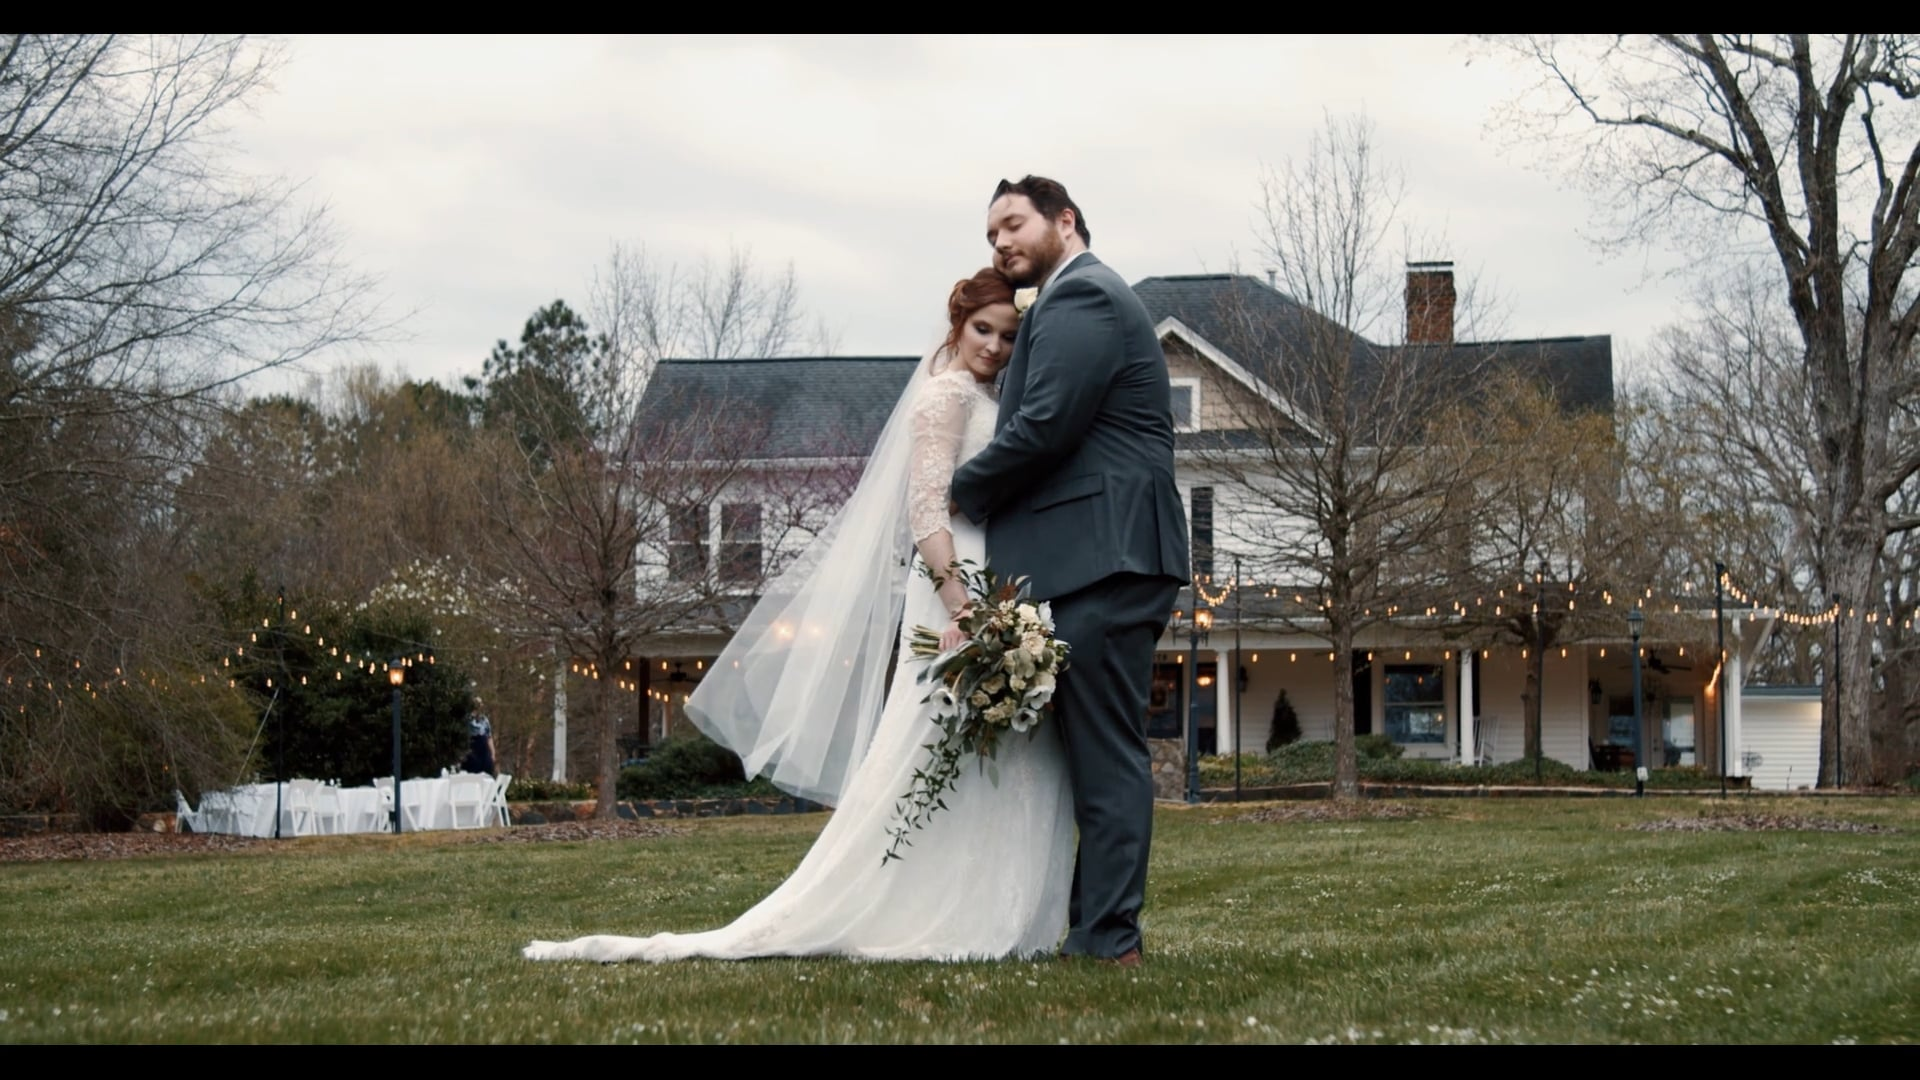 Josh and Darby Wedding Feature Film